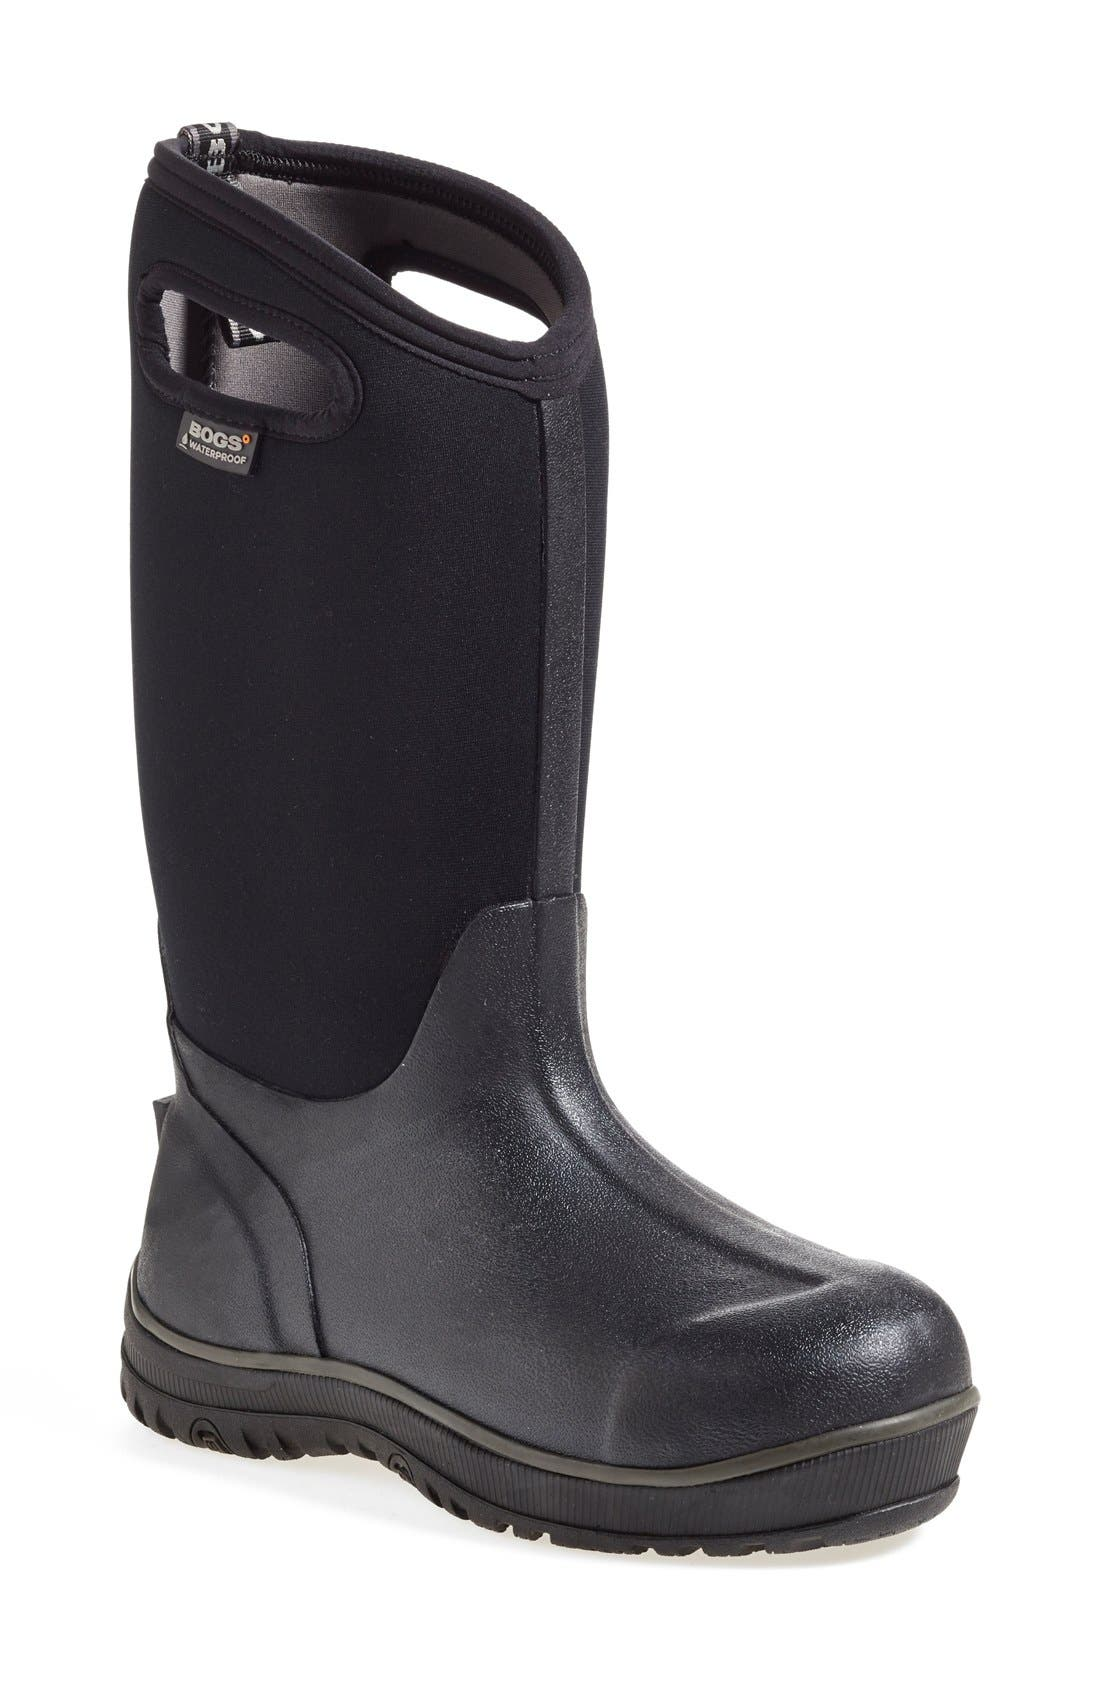 'Classic' Ultra High Waterproof Snow Boot with Cutout Handles,                             Main thumbnail 1, color,                             Black